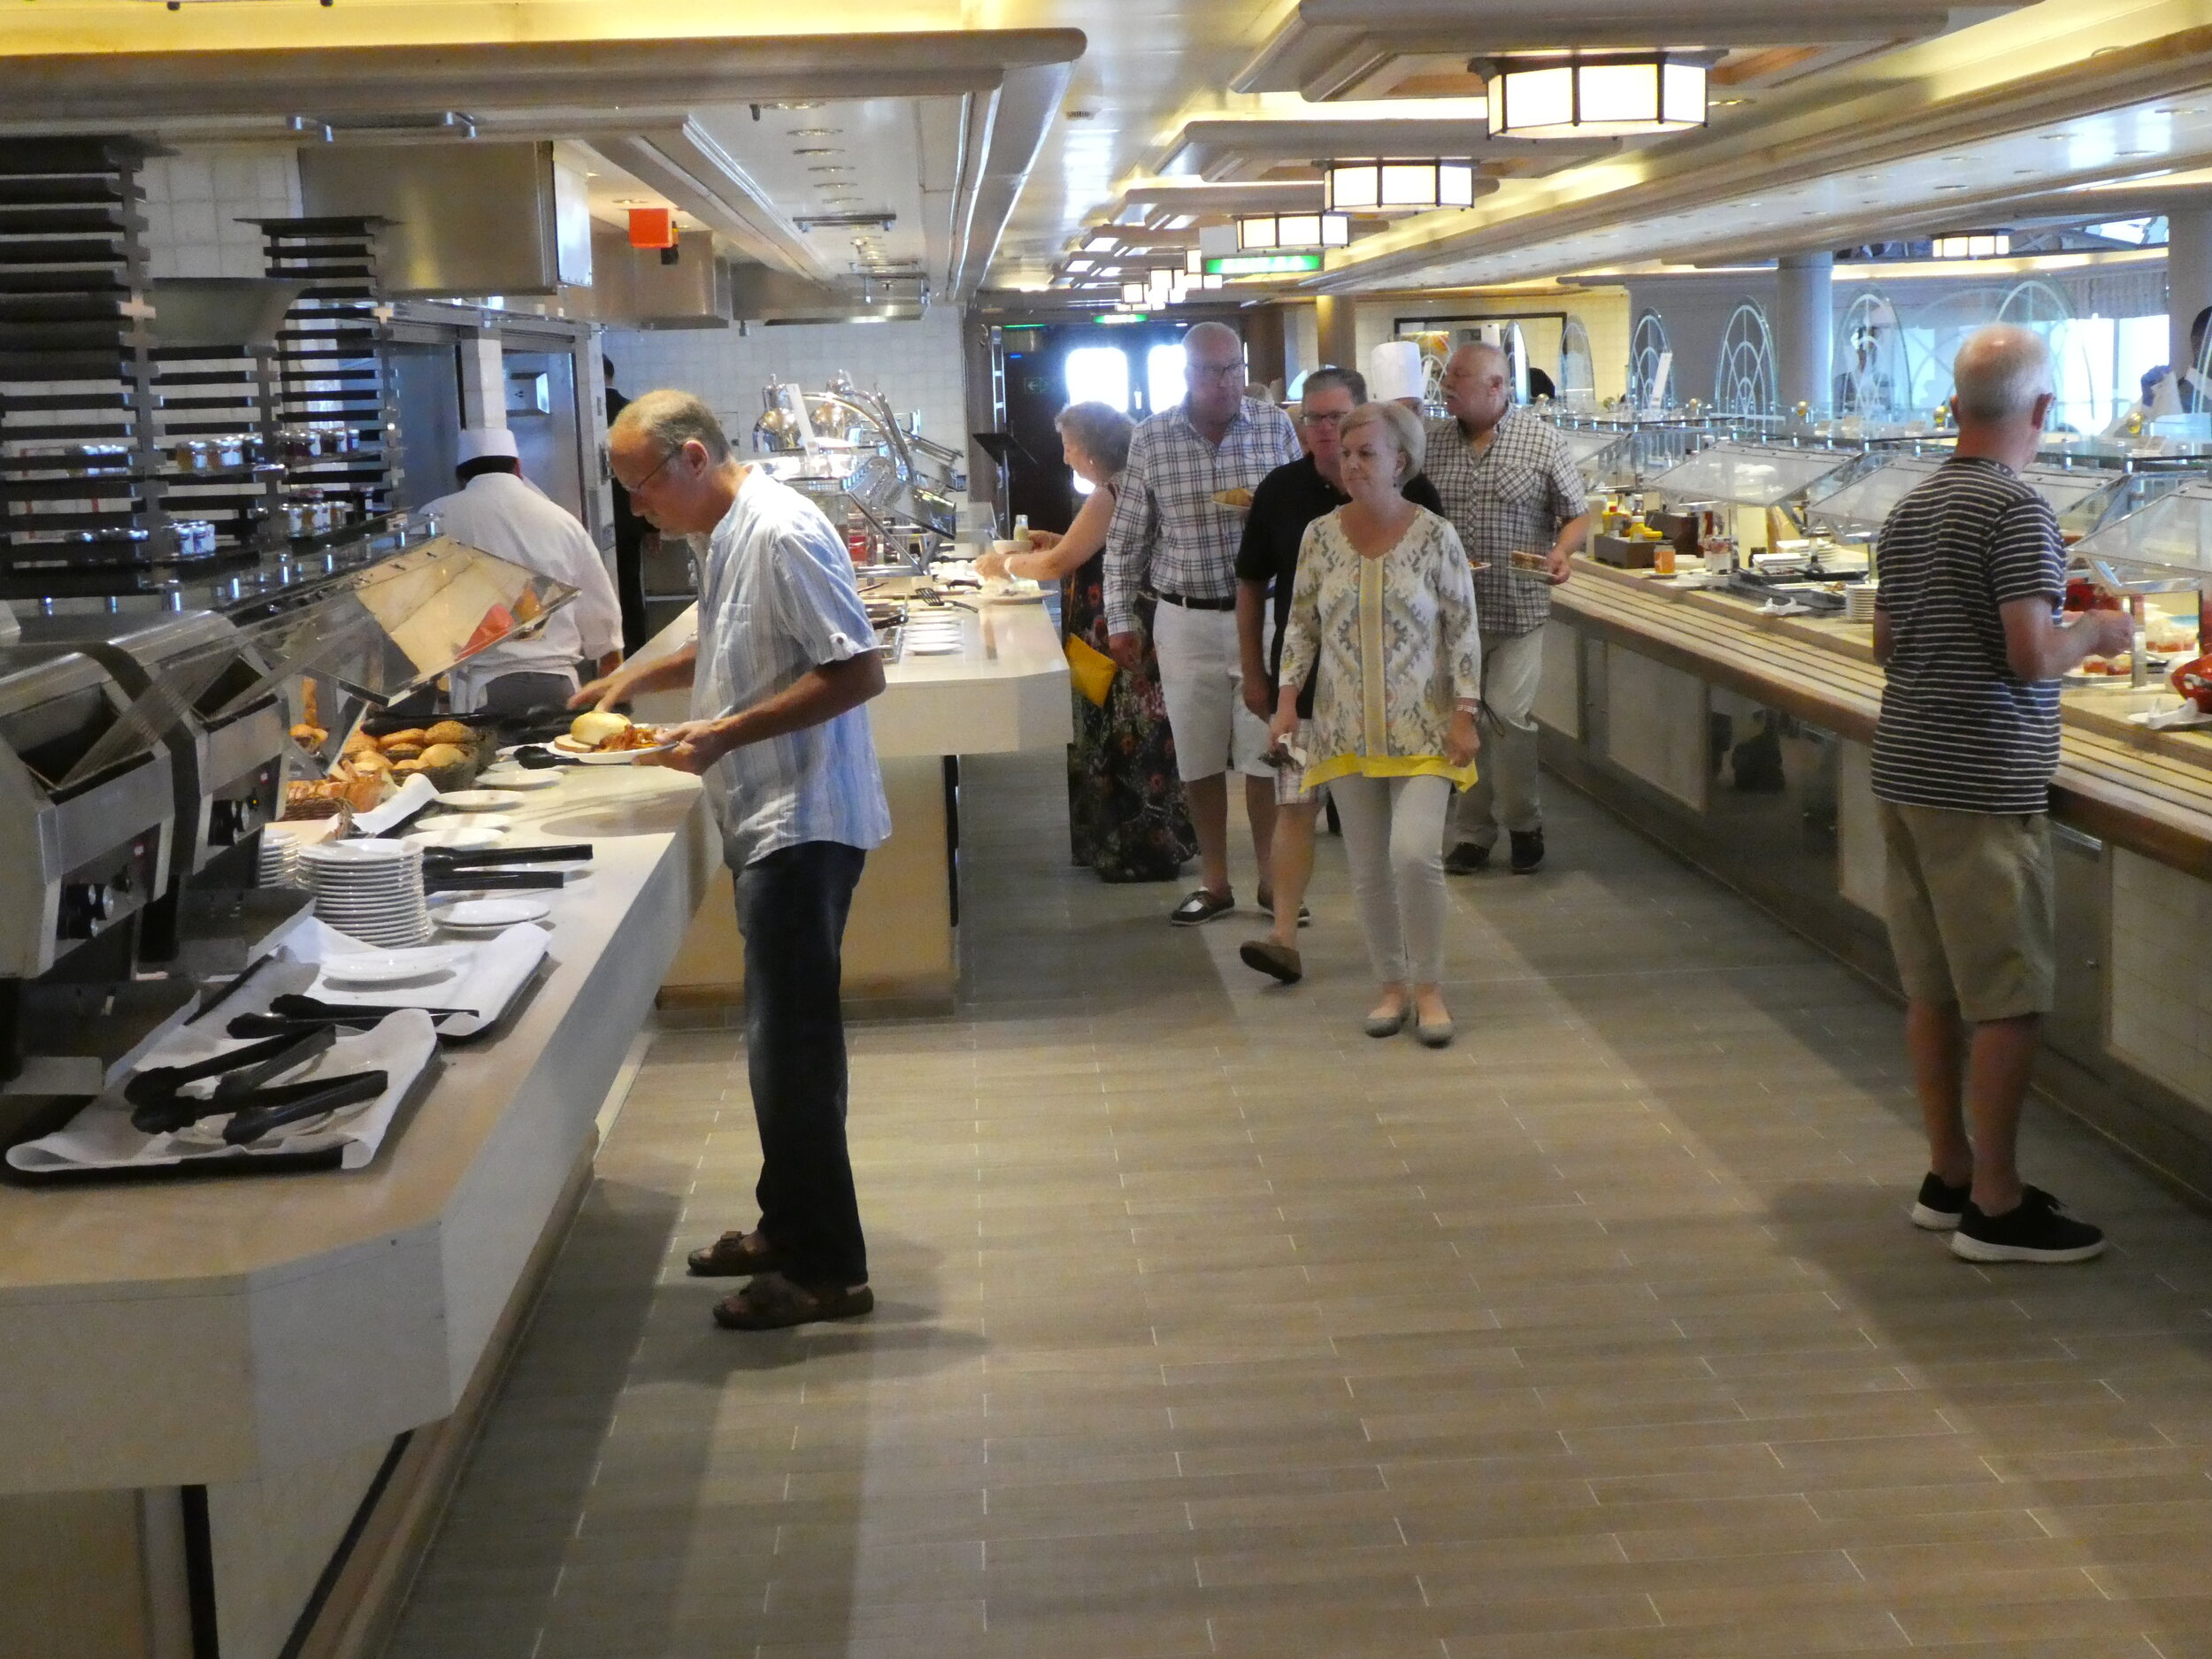 Lido Buffet. Large and usually uncrowded